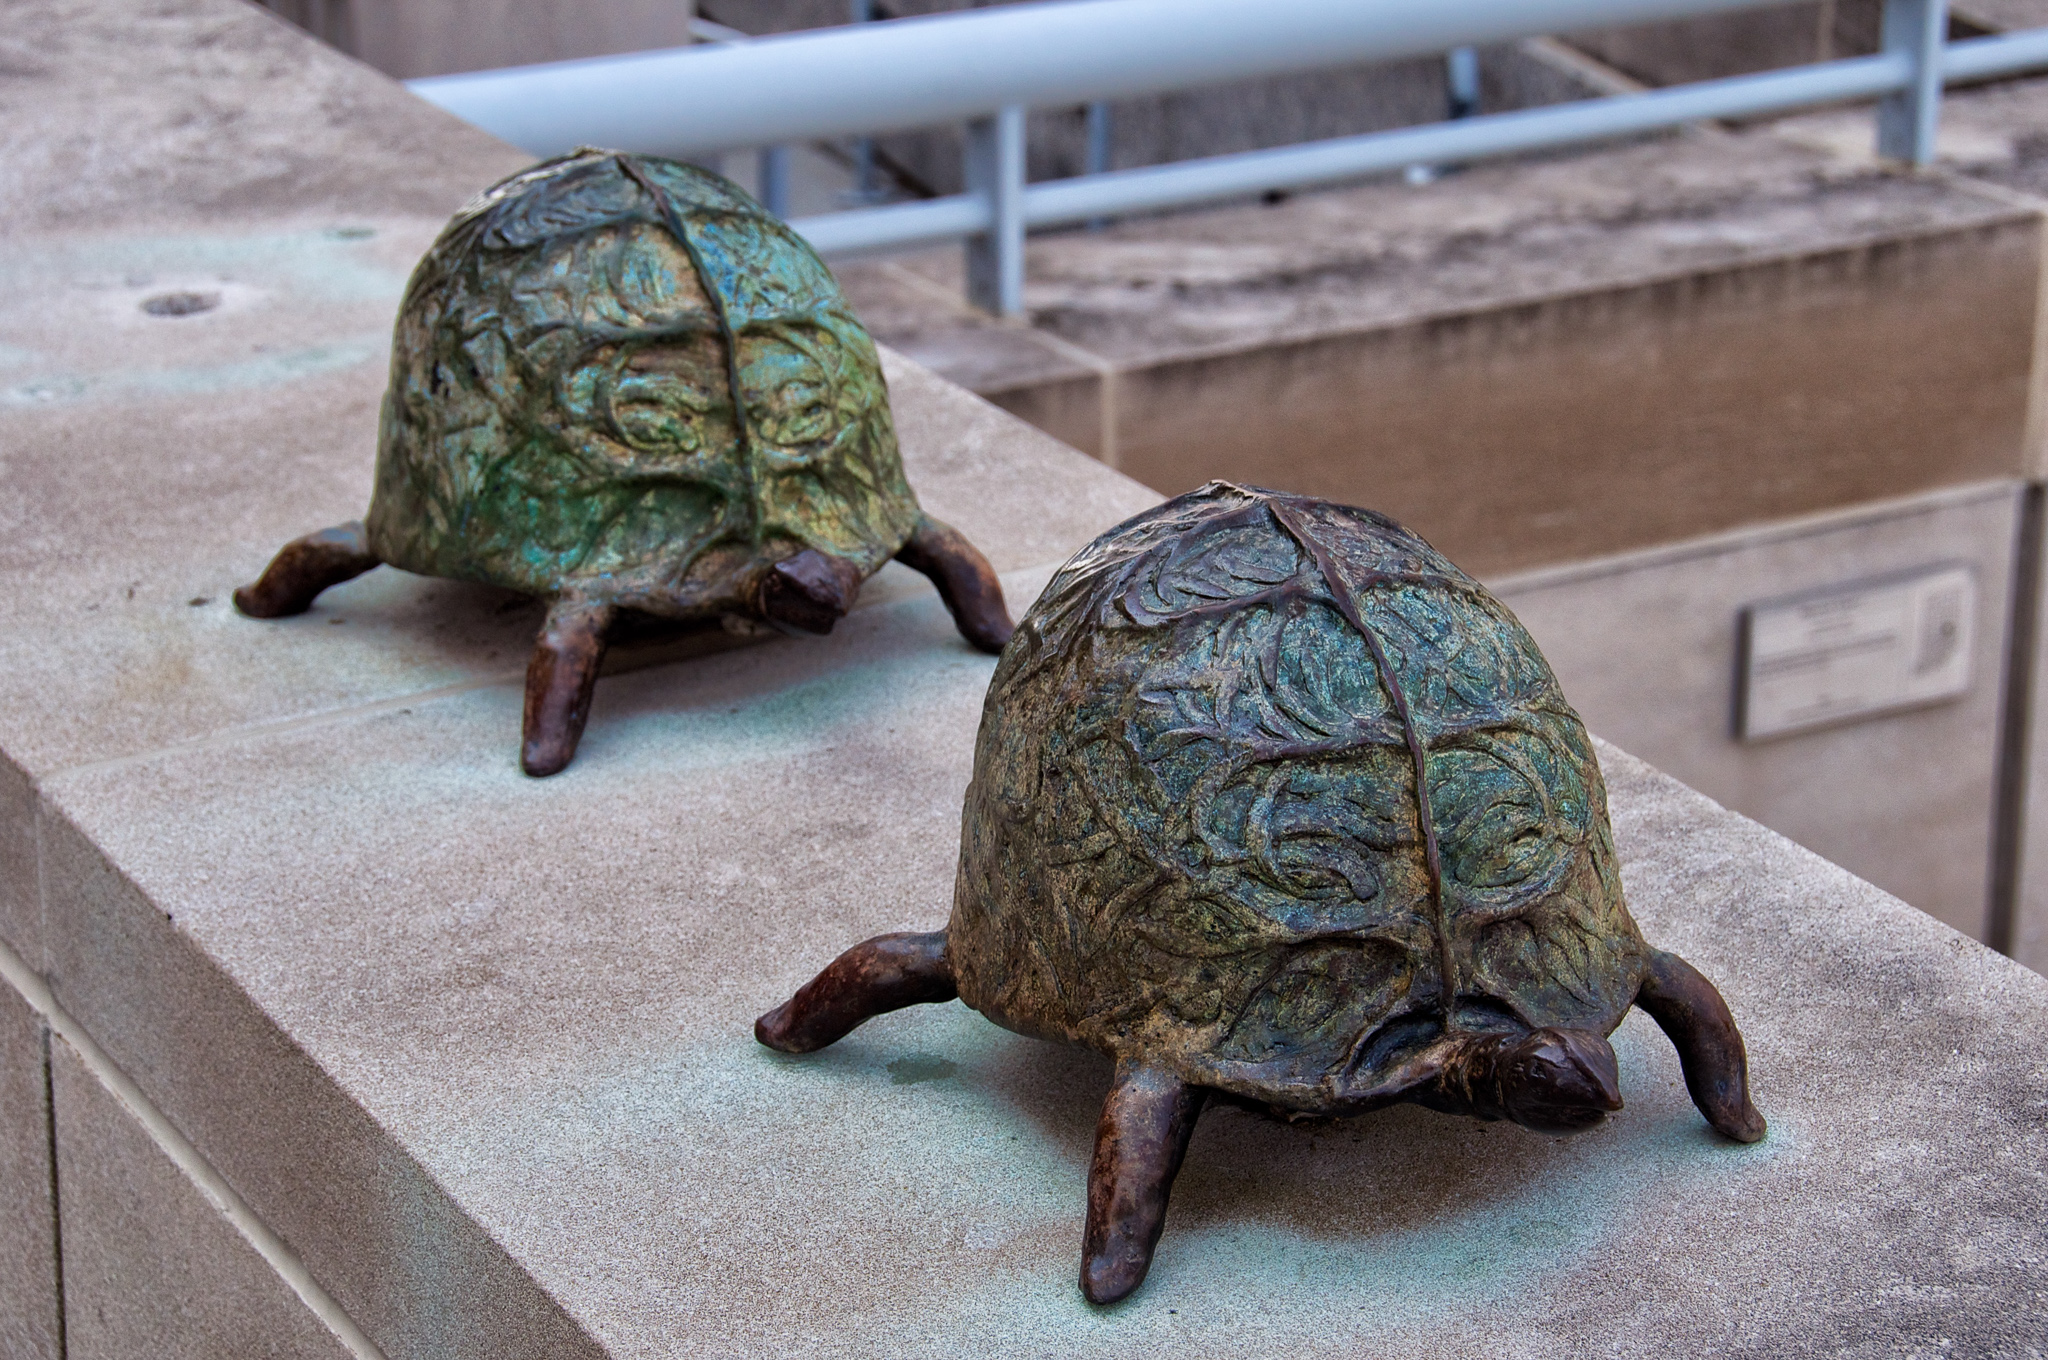 Another view of the turtles at the Indiana State Museum, from Where Am I? Game #211.